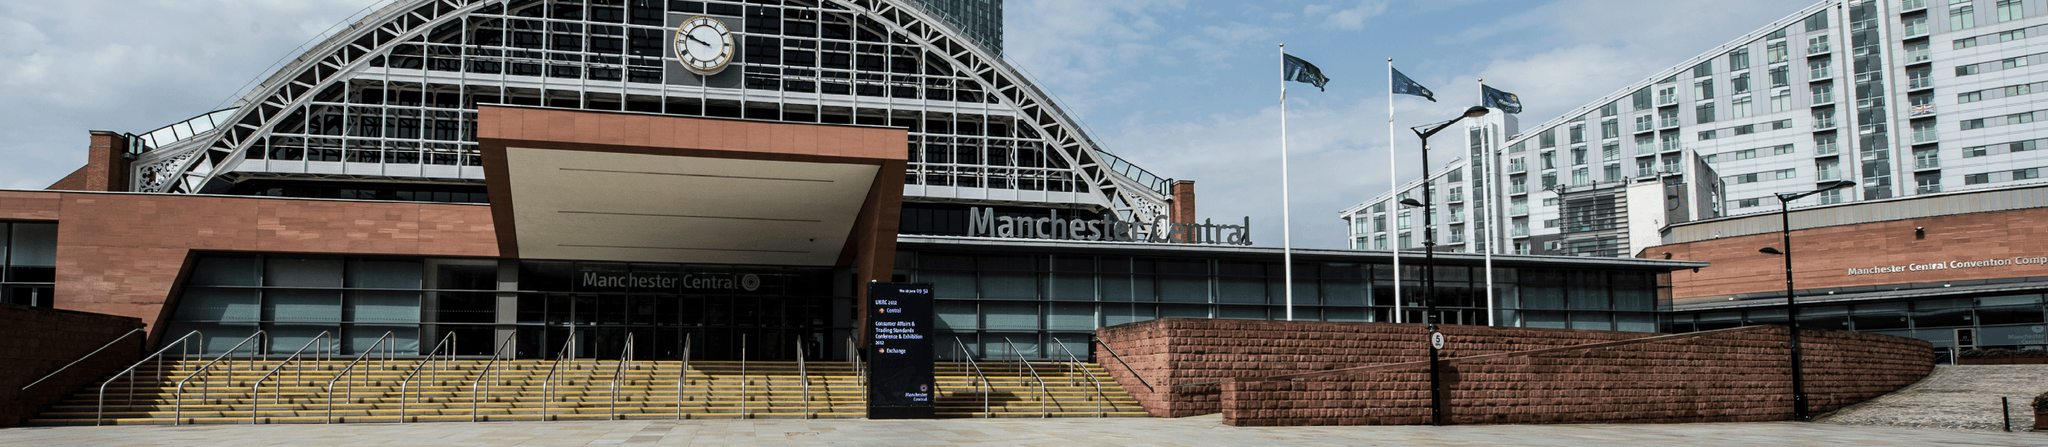 Manchester Central Outside Image